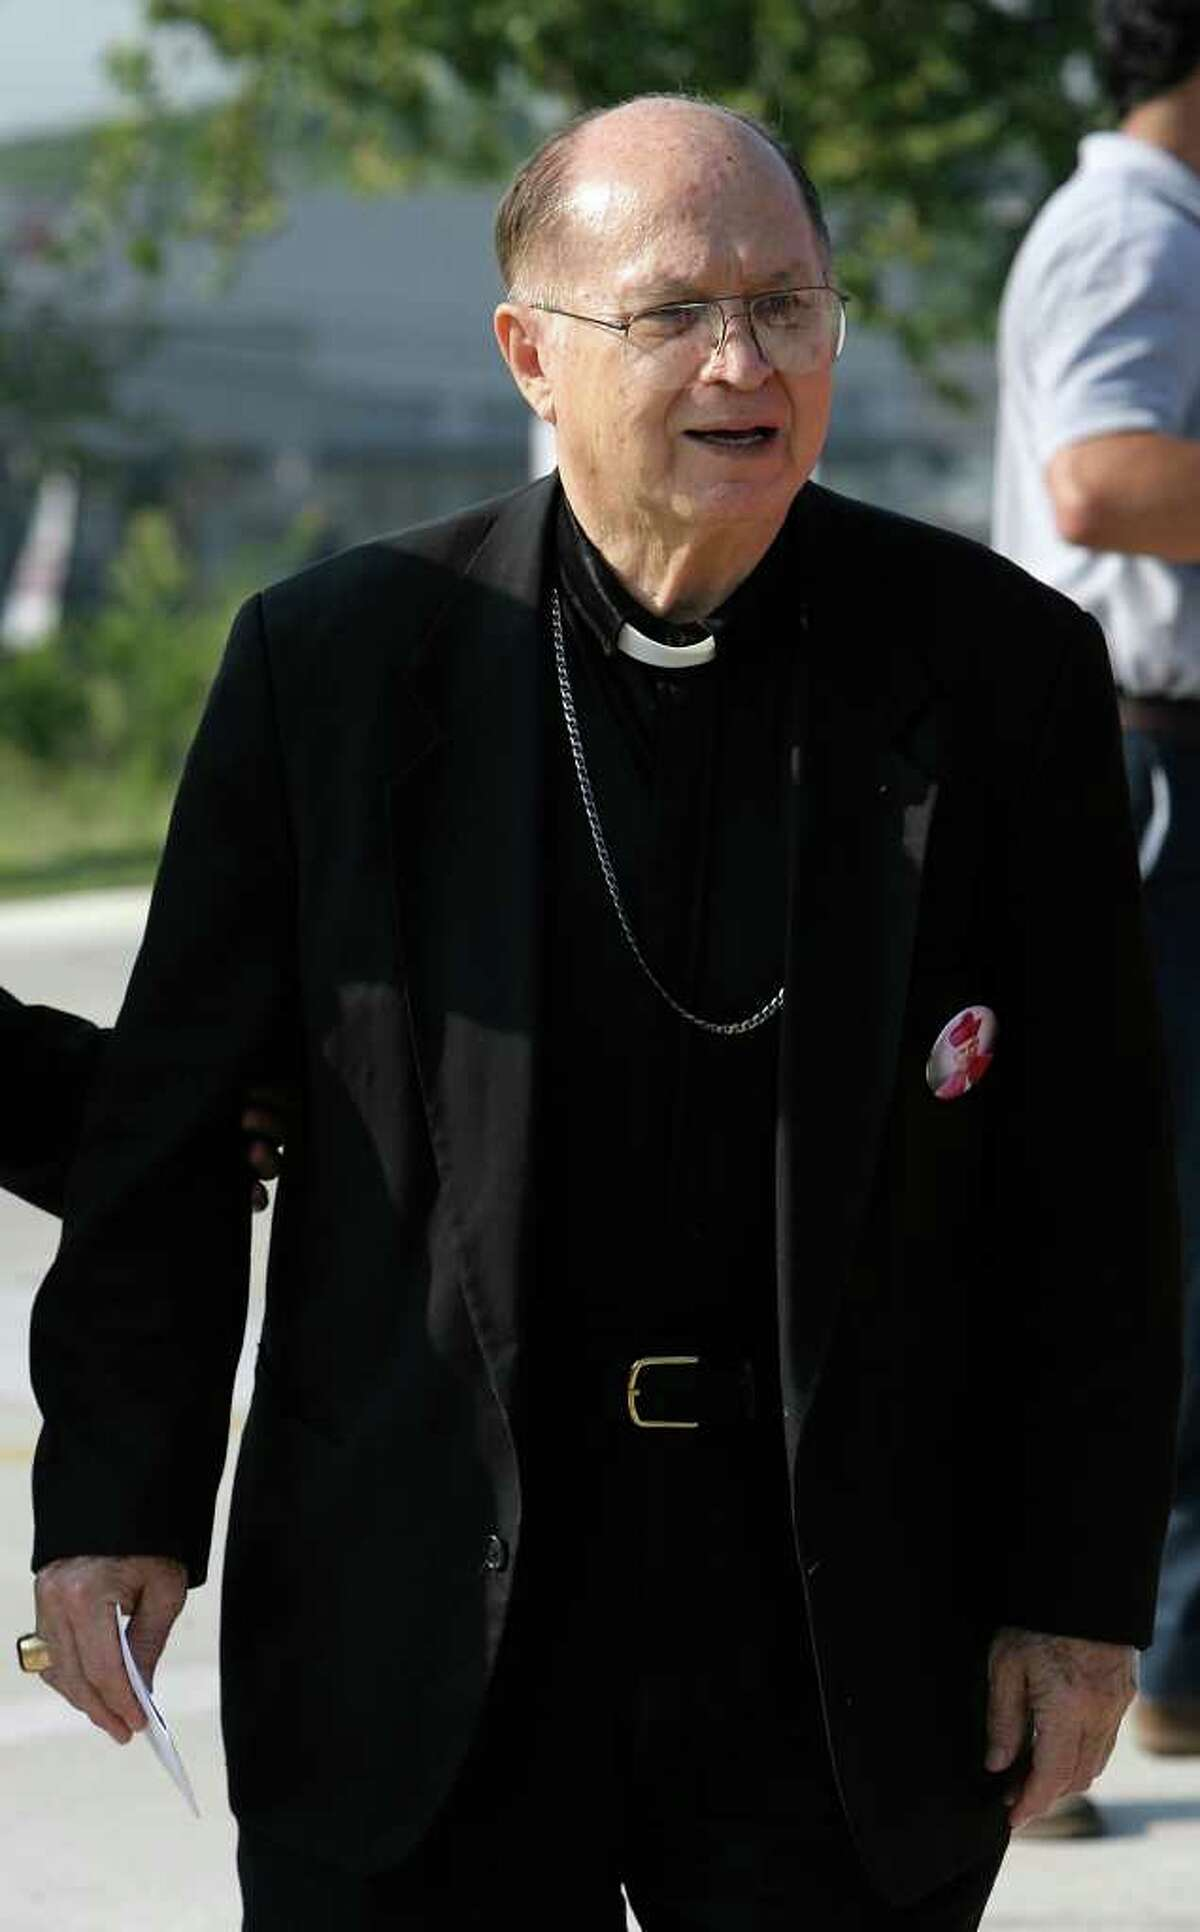 ** FILE ** Retired Archbishop Patrick Flores arrives at the blessing of the memorial marker honoring Pope John Paul II by Stevens High School on Sept. 13, 2007. Archbishop Patrick Flores was found safe early Wednesday more than 200 miles from the assisted living center where he was reported missing the day before.